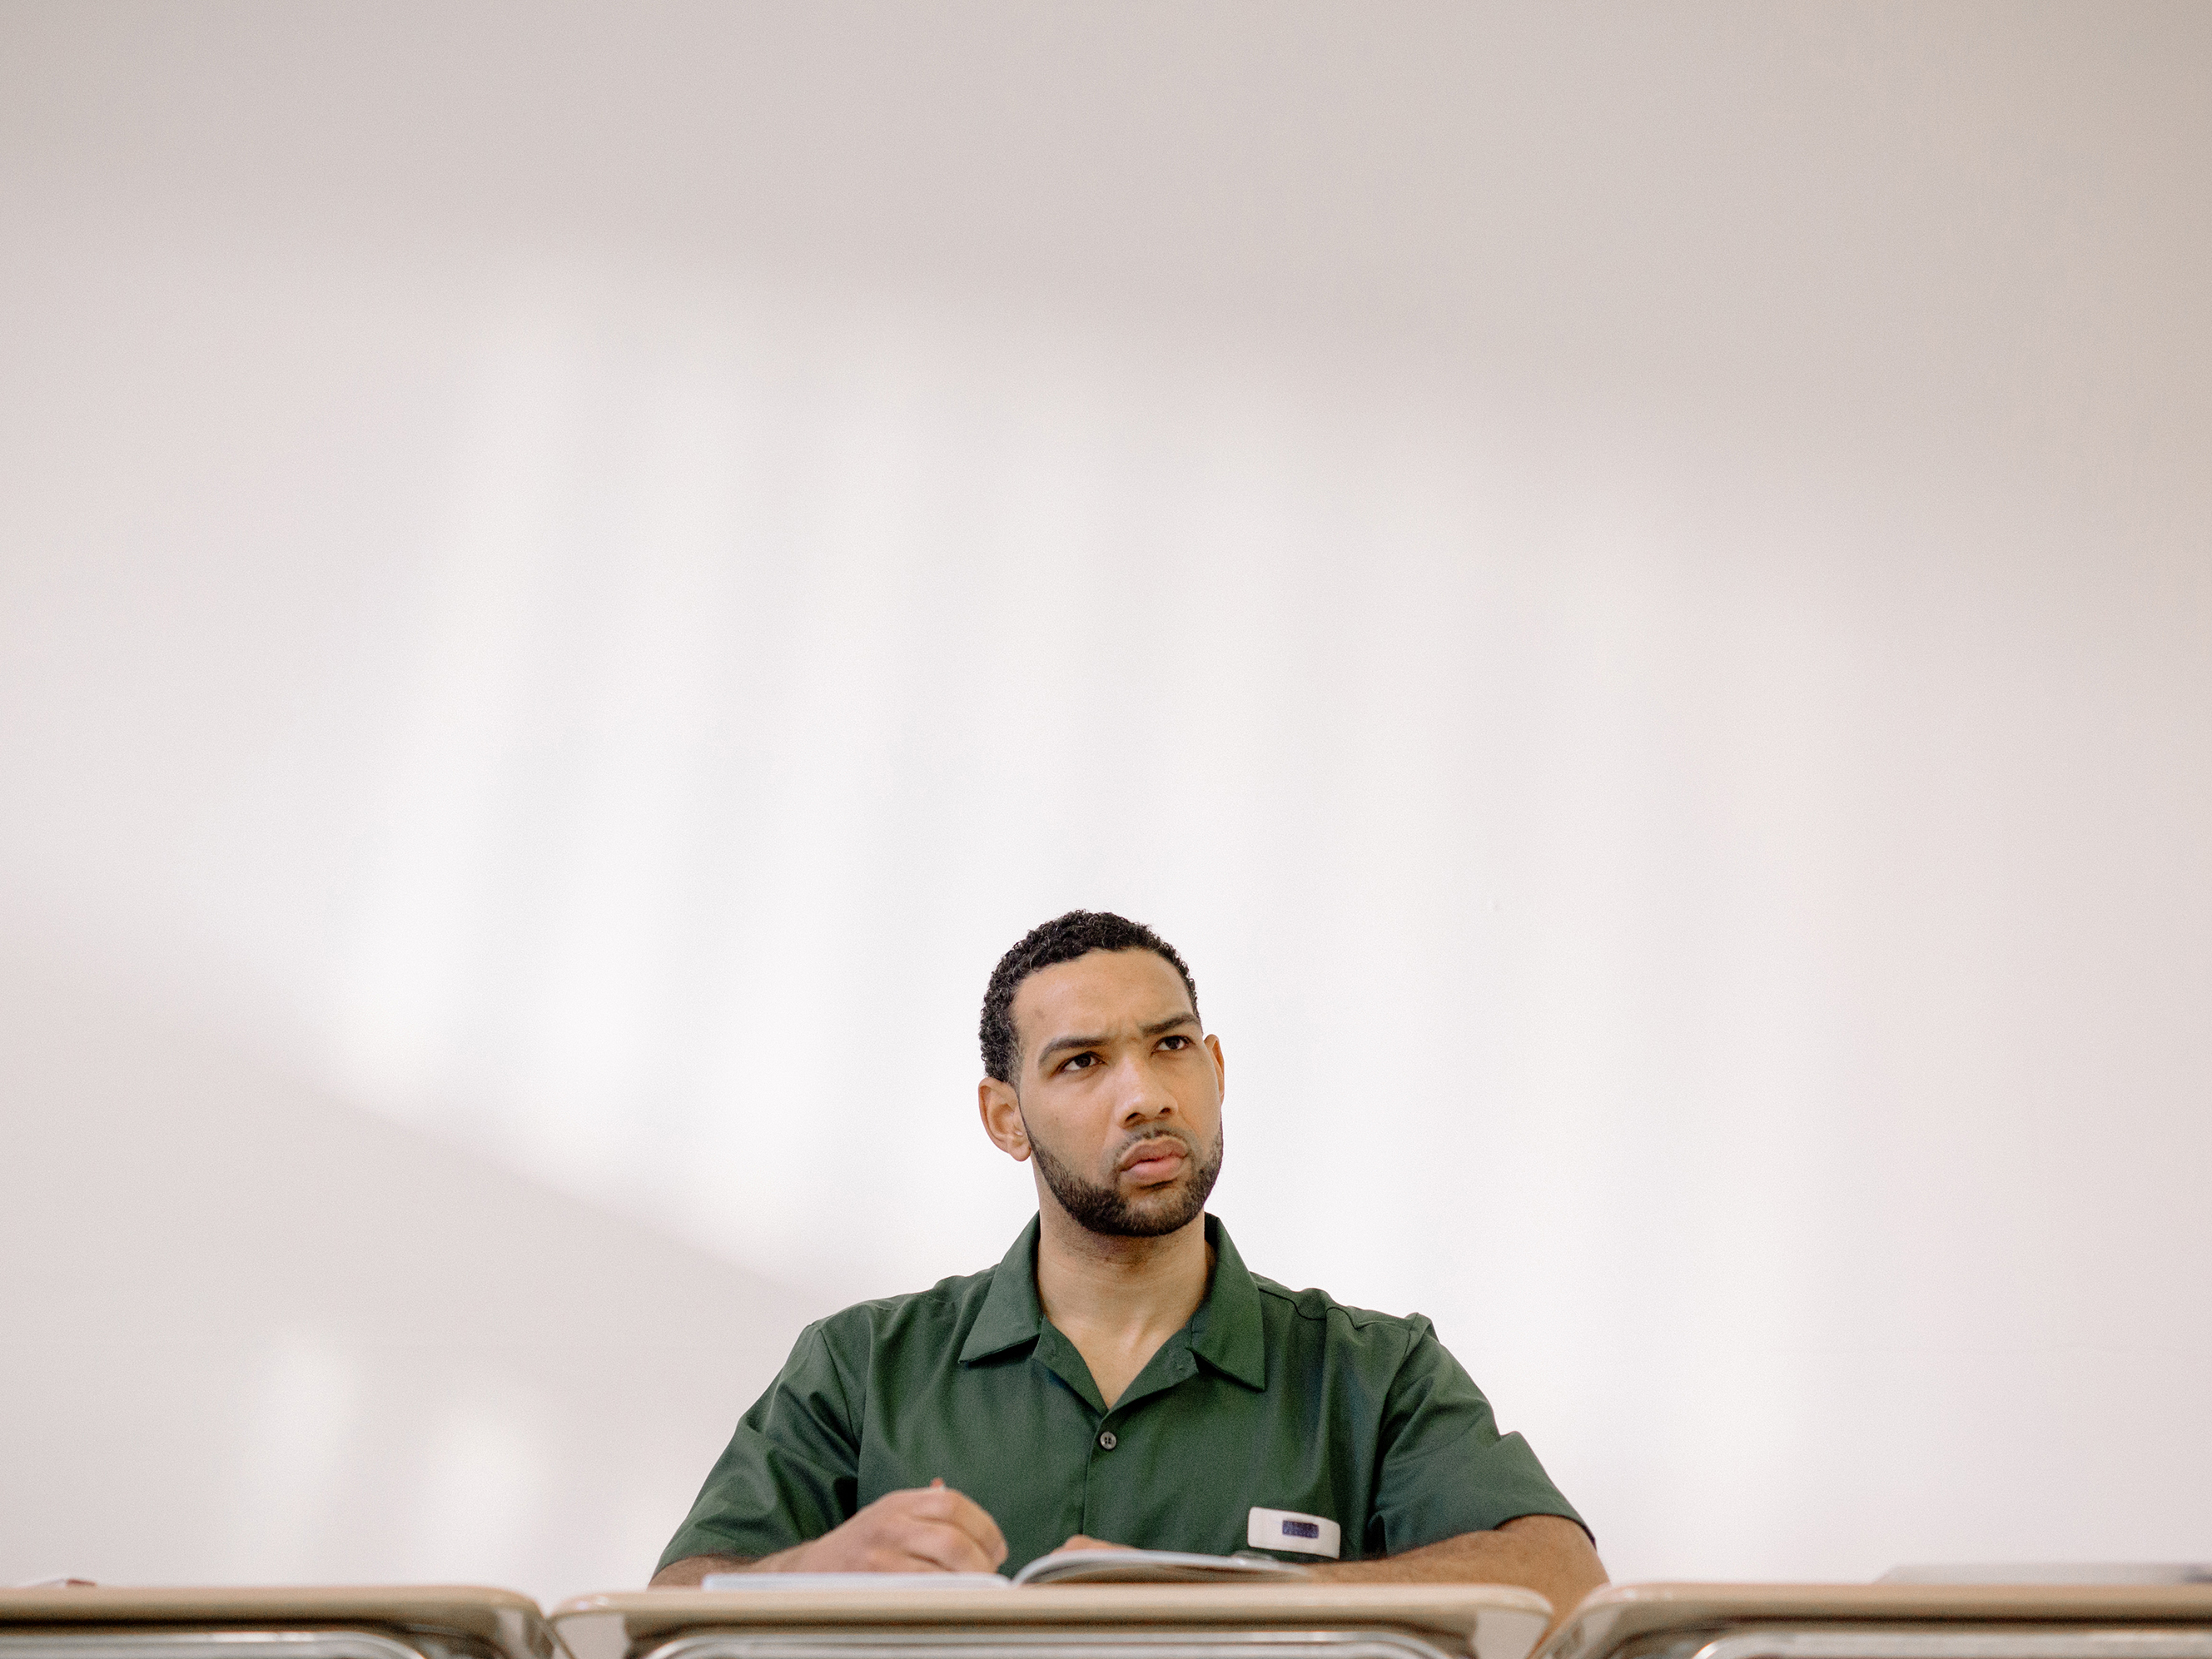 Dyjuan Tatro, 31, has served 11 years for violent gang and drug crimes. He is a math major with a 3.72 GPA and was part of the team of inmates who beat Harvard in a debate. (Cameron Robert/NPR)